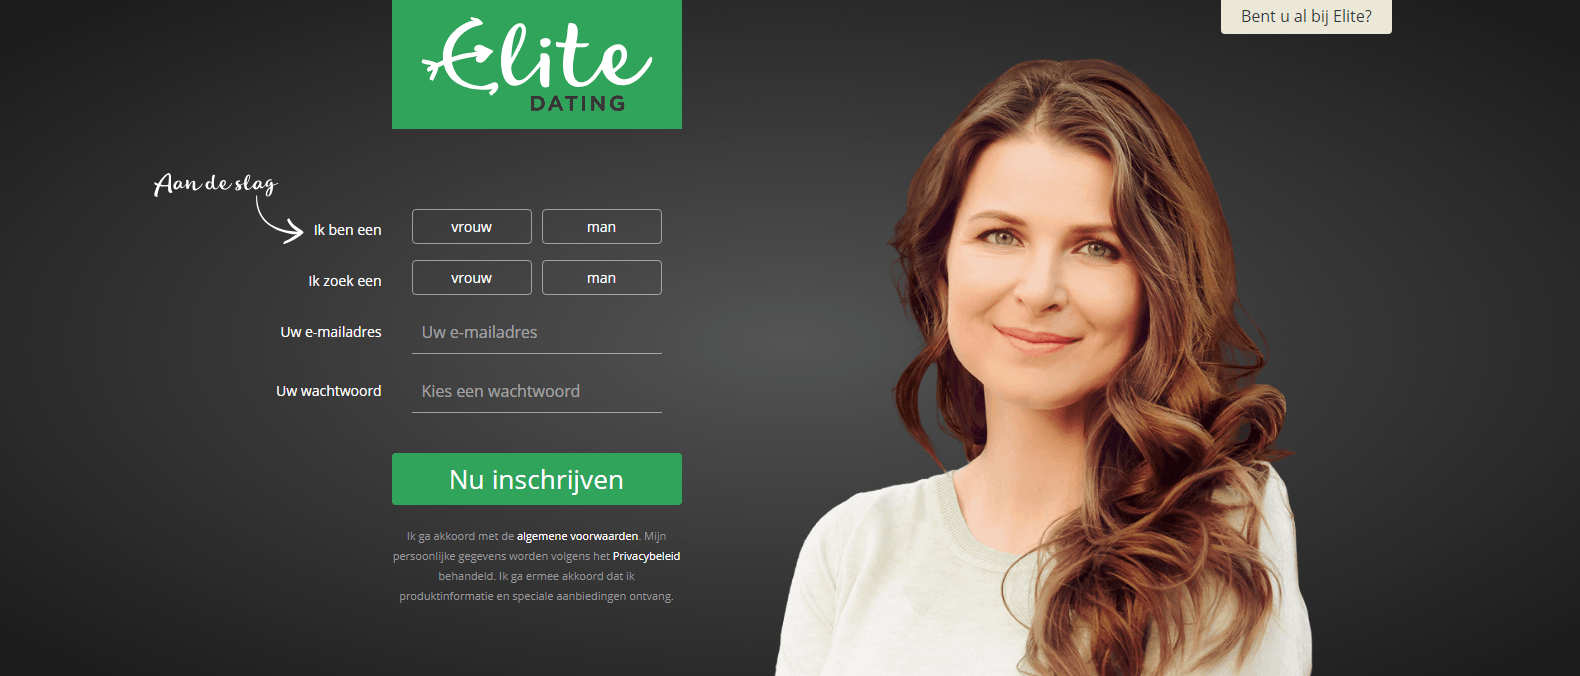 online dating informatie